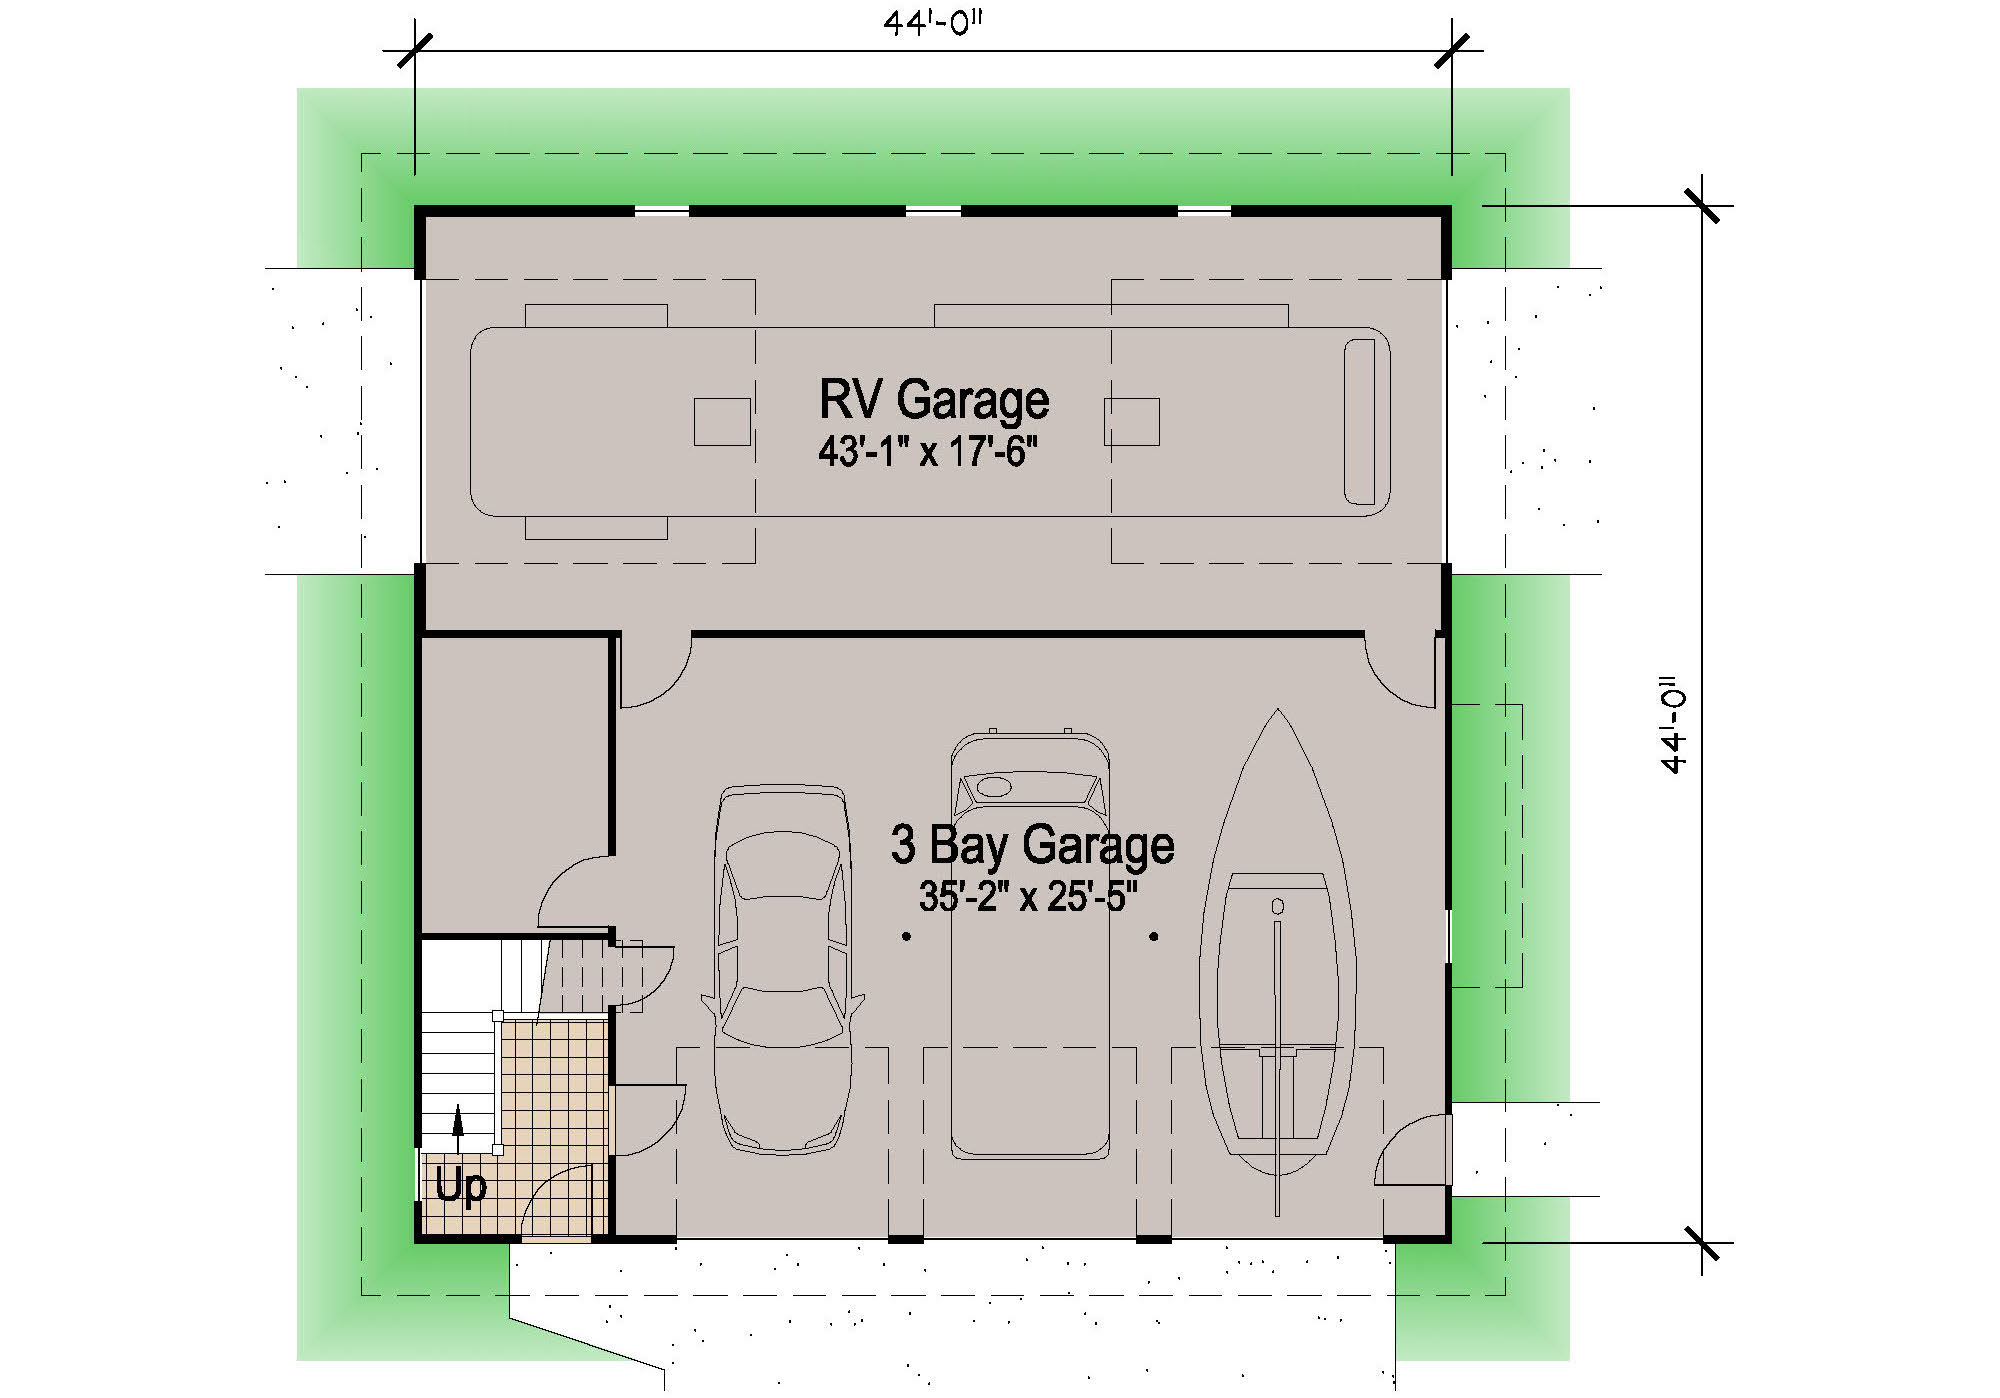 Garage Apartment Plans With Rv Storage Shingle Rv Garage 39 Motor Home Southern Cottages